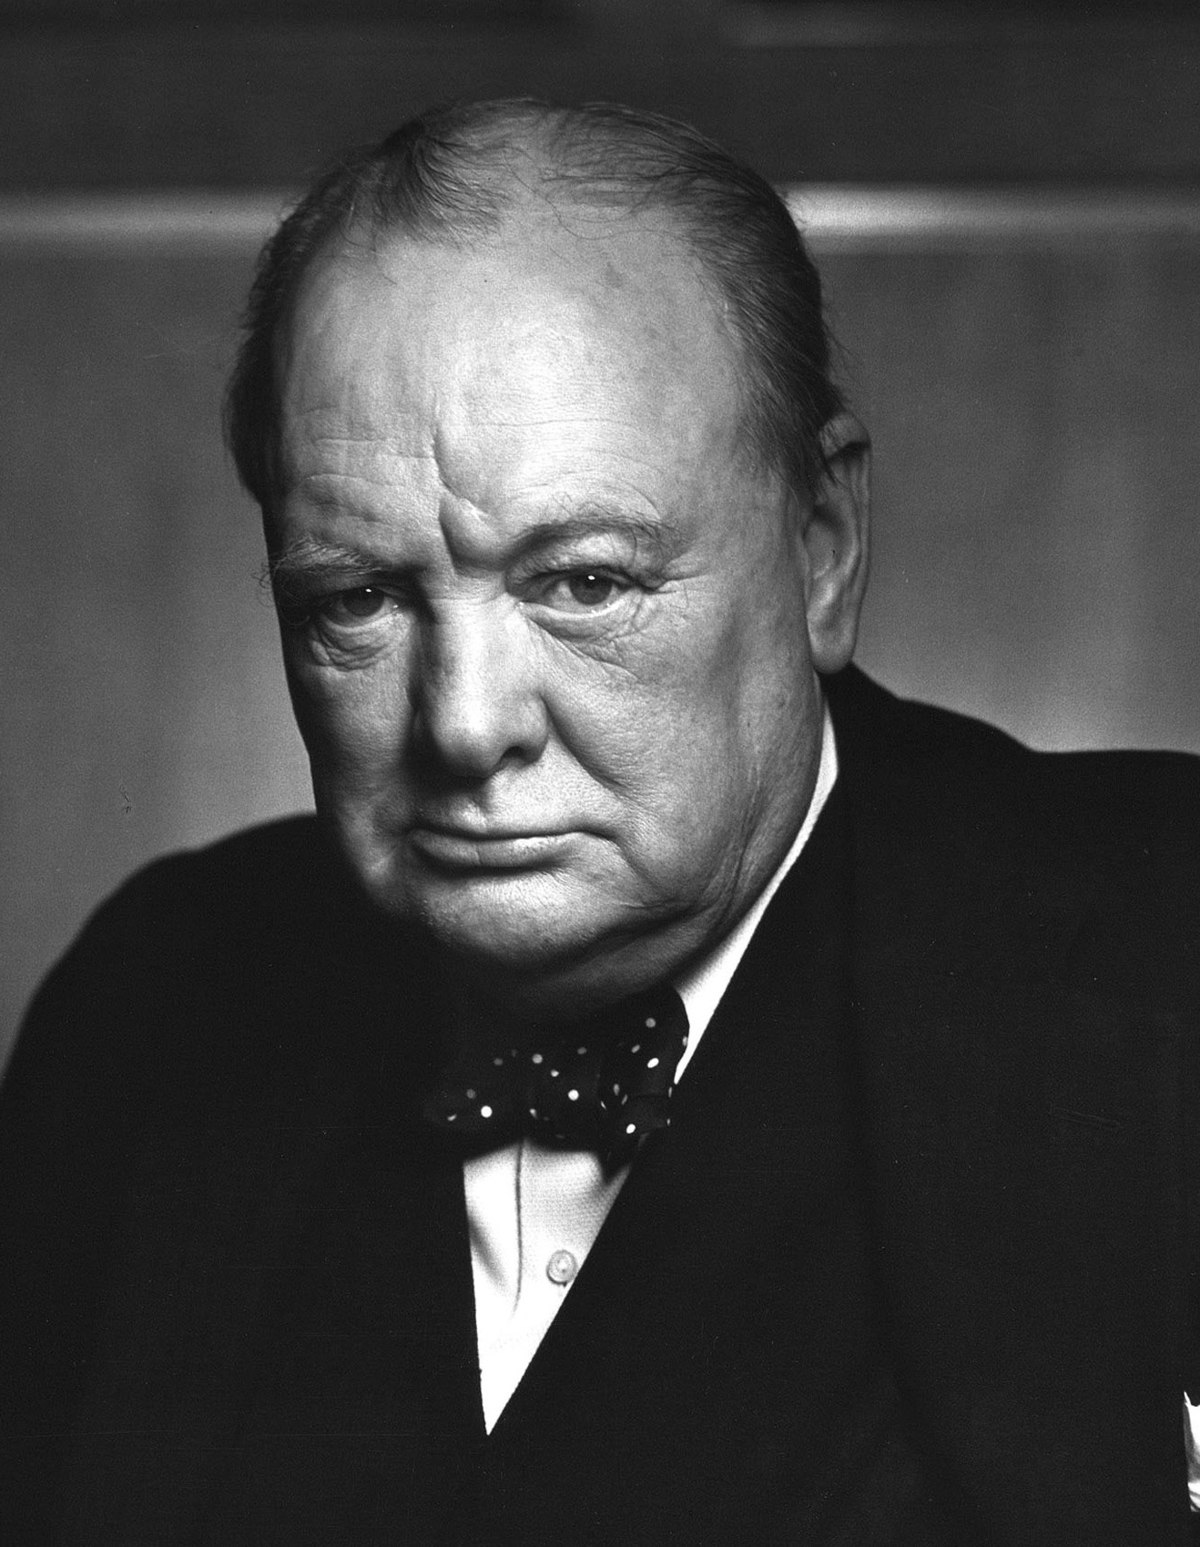 Today in history… Churchill 'sacked' at war's end